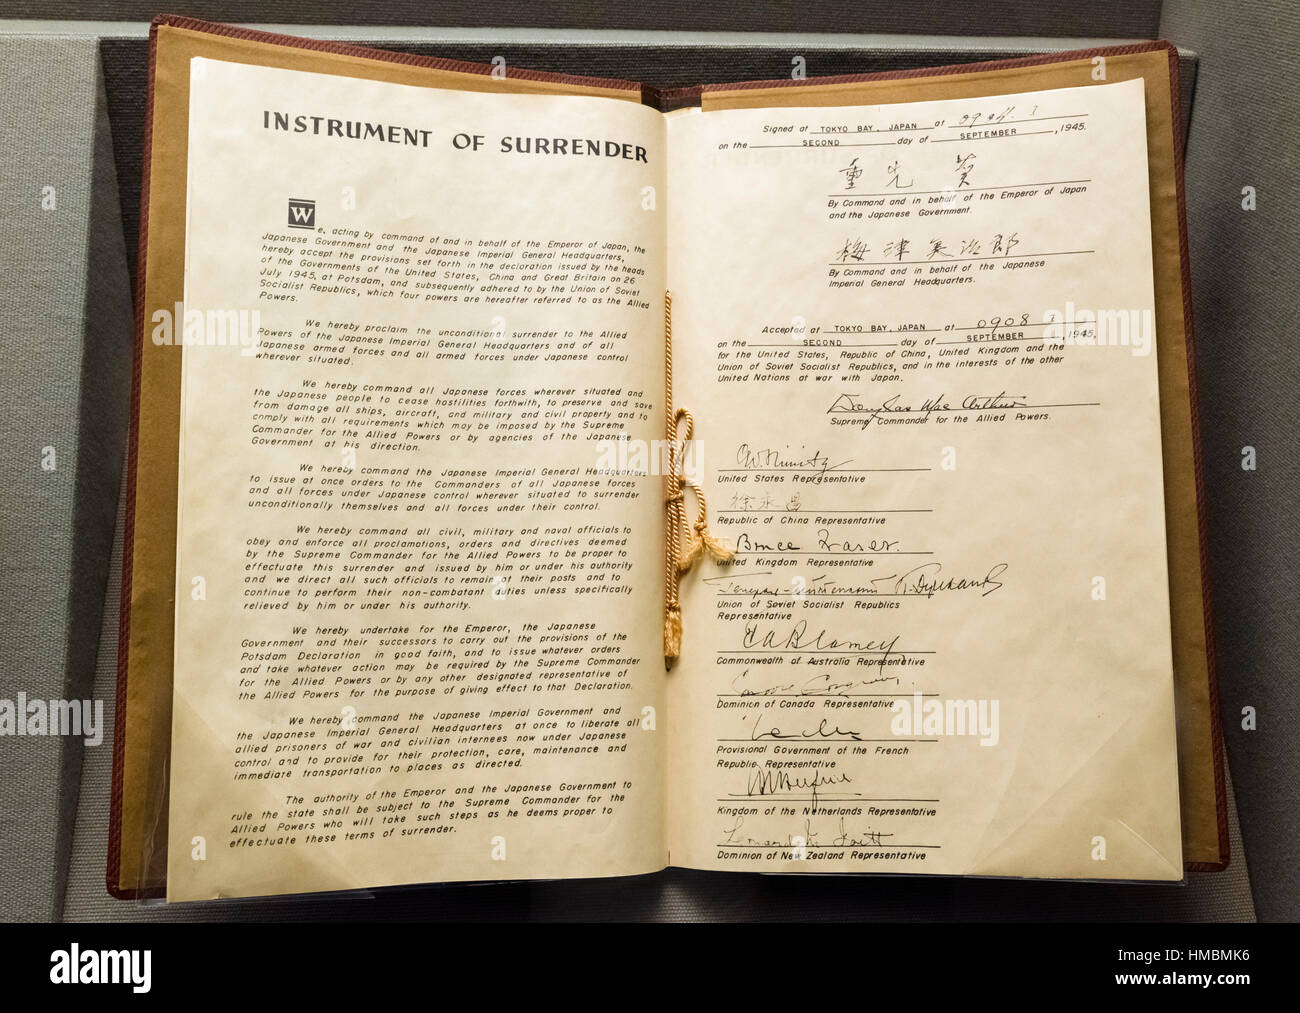 Facsimile Copy Of The Japanese Instrument Of Surrender Which - World war ii museums in usa